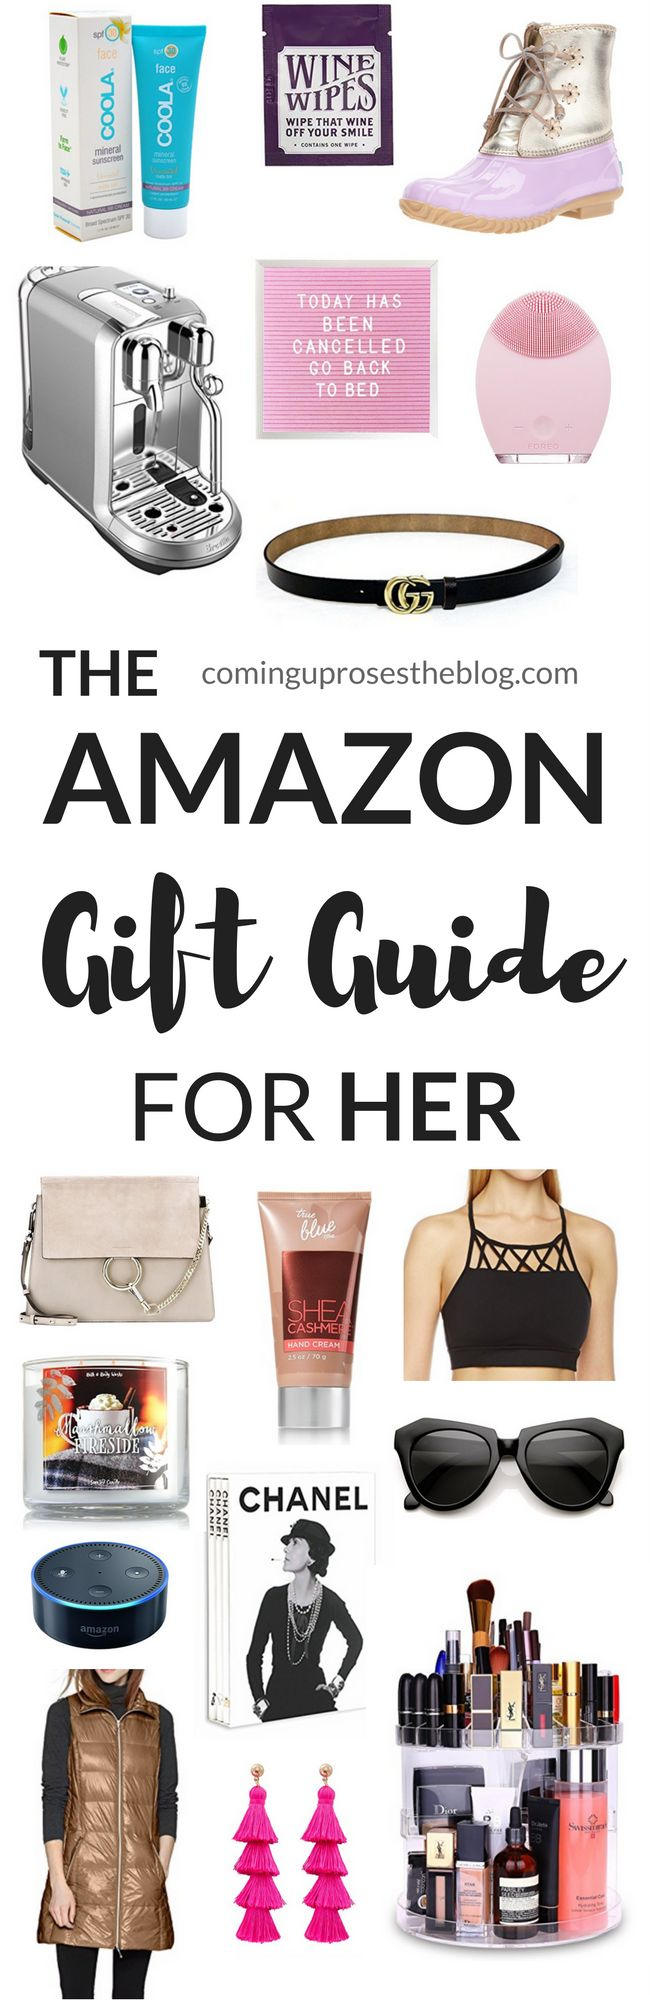 gift guide, gift guide 2017, amazon gift guide, what to buy from amazon, things to buy on amazon, best things to buy on amazon. gift guide for her